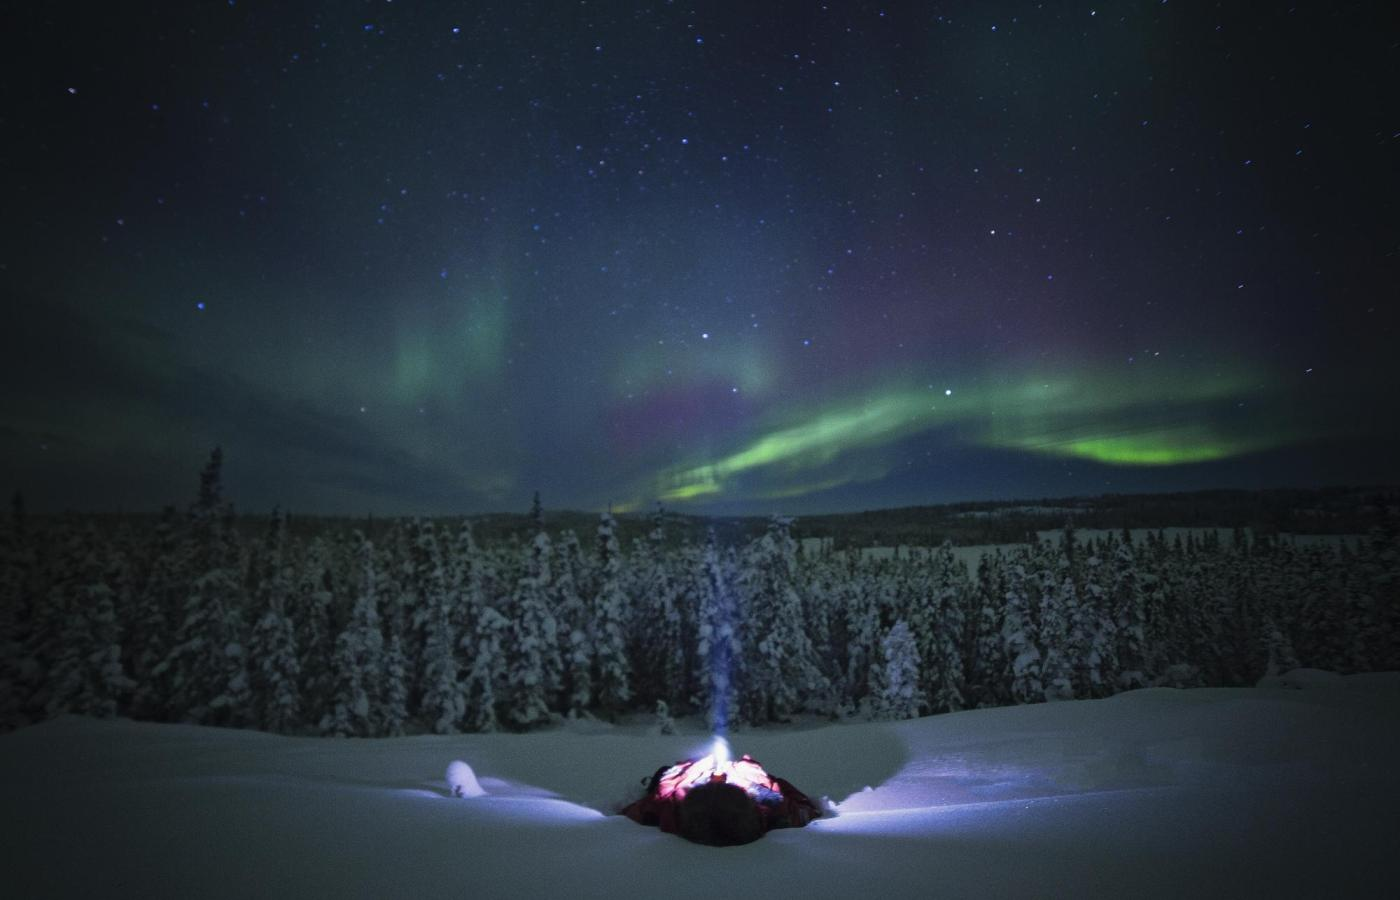 a person lies in the snow watching the aurora